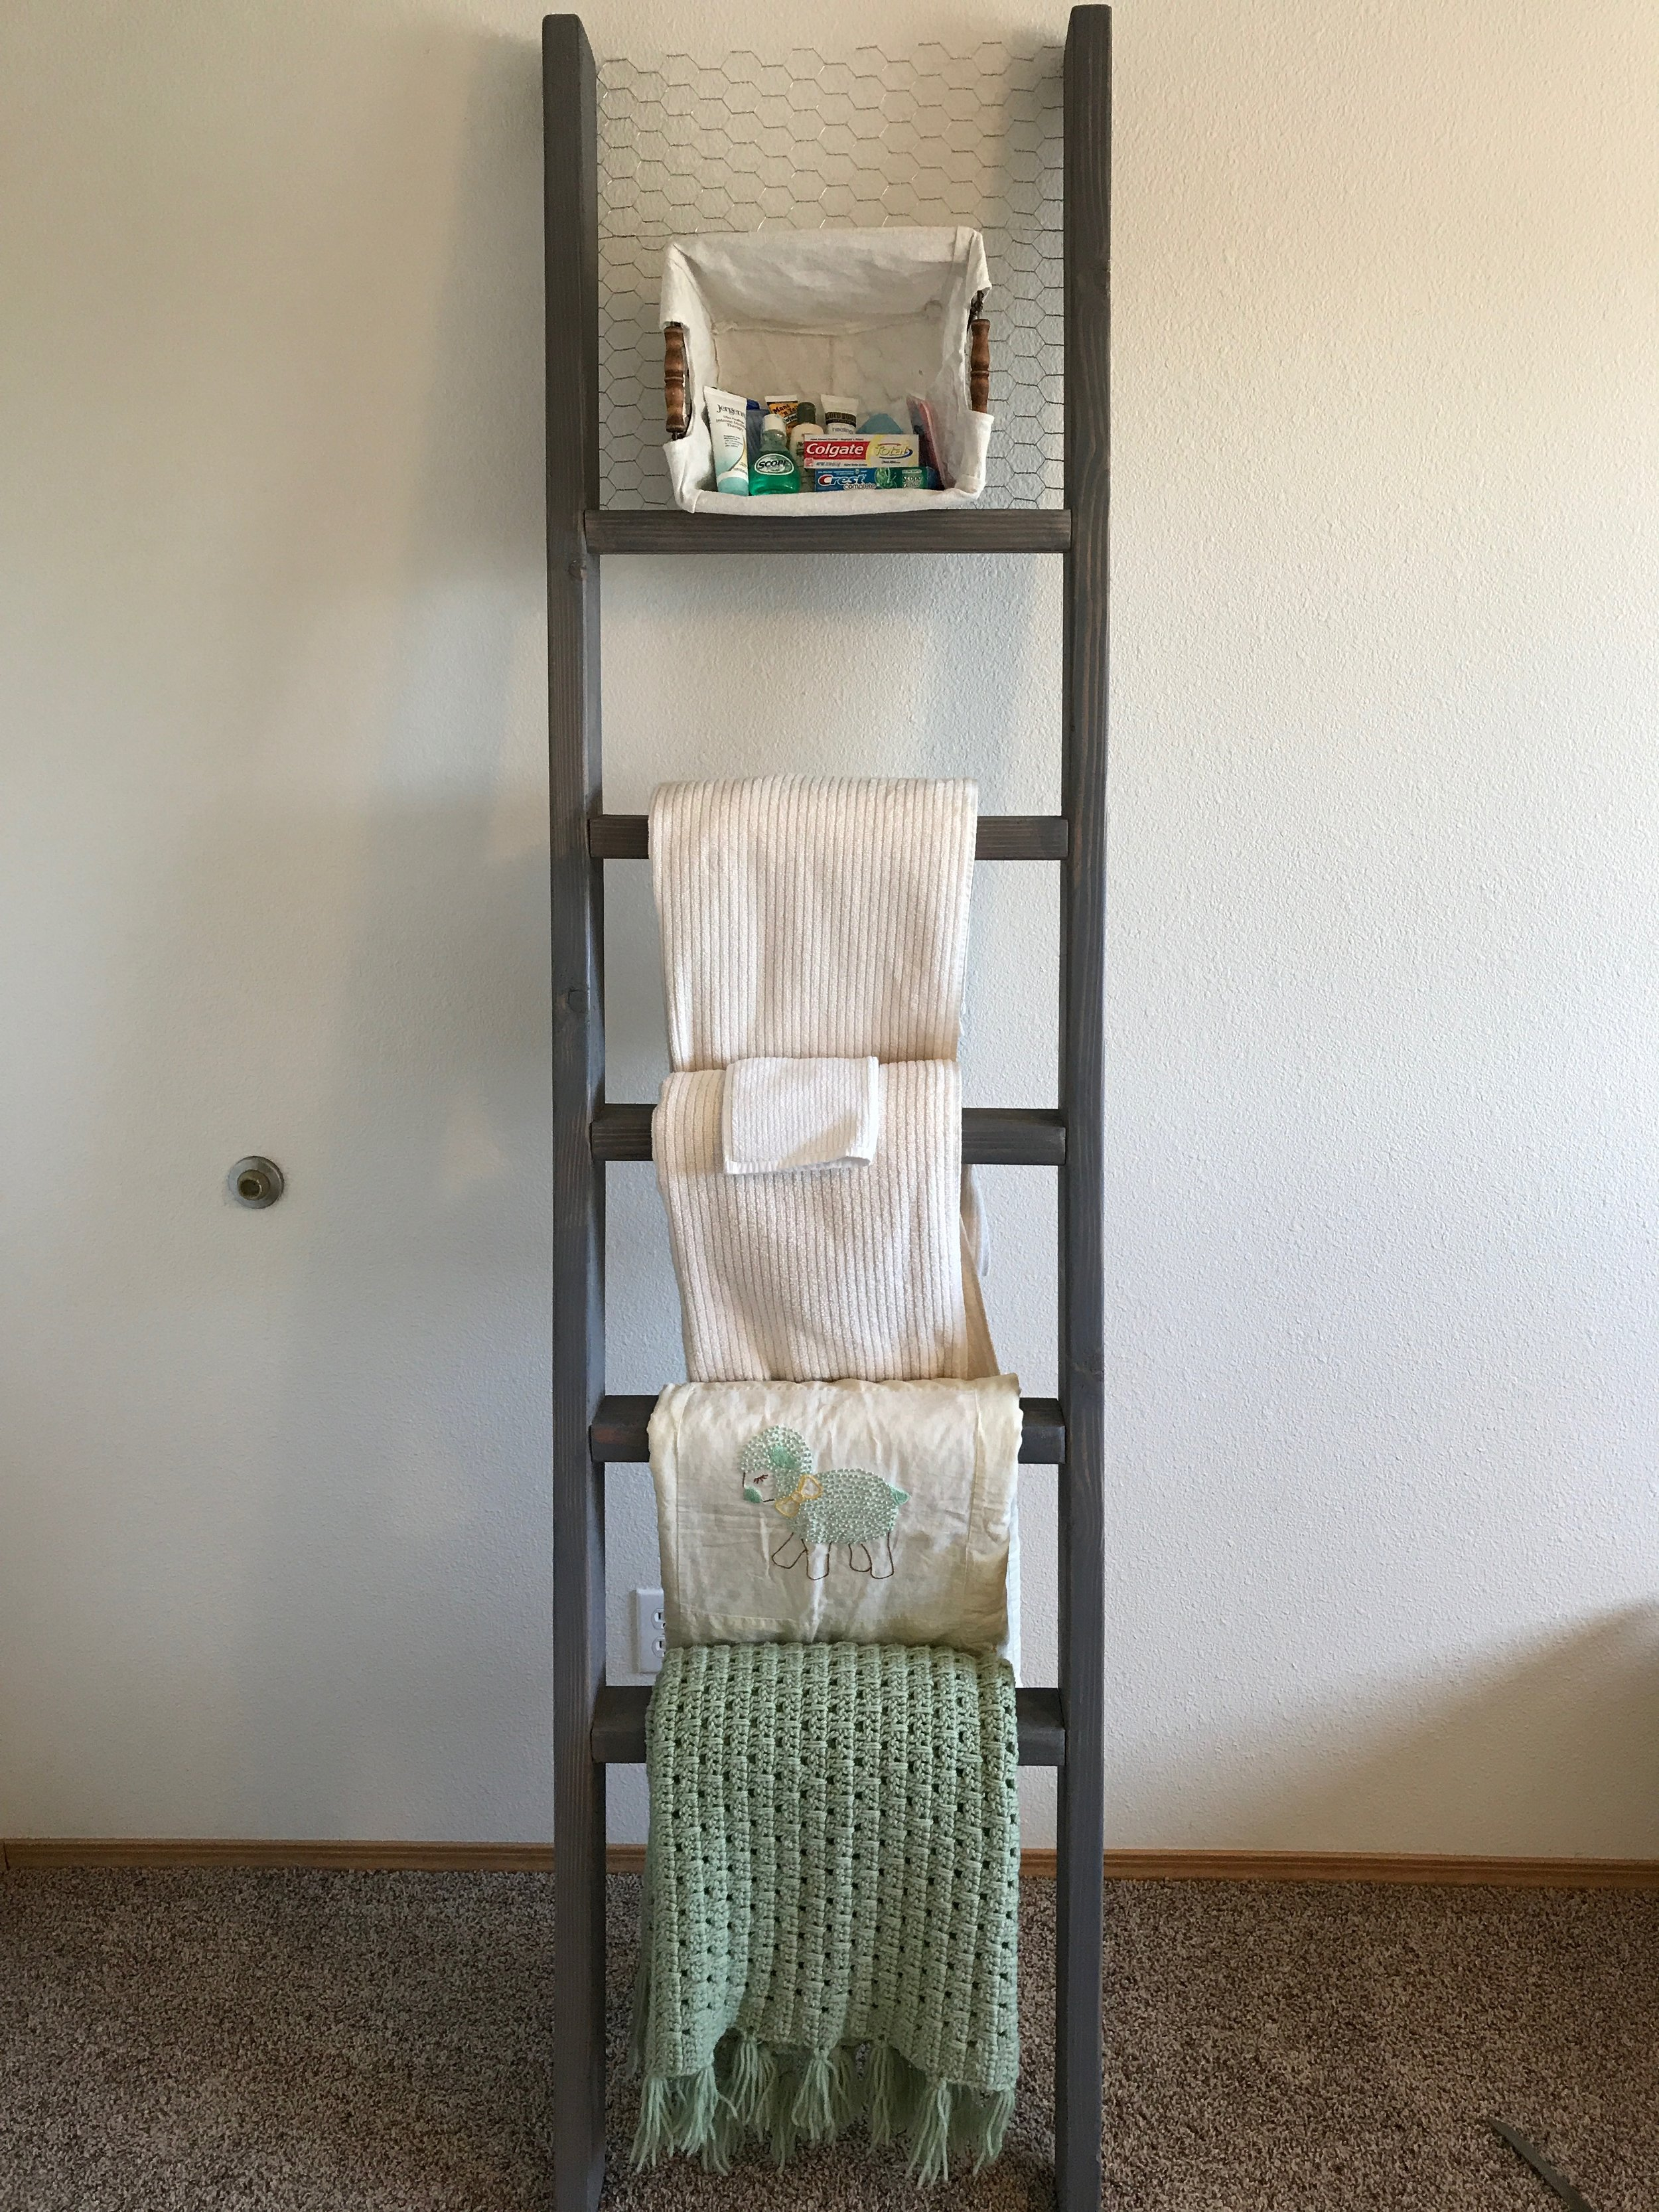 - I decided that I wanted to have a basket on the top to put travel sized bathroom essentials since it was for the guest room. We stapled chicken wire to the top and i was able to hang the basket from the wire. Later on down the road I will be clothes pinning black and white photos above the basket. All in all I enjoyed my first wood working project and look forward to more in the future!Let me know if you great one as well and how it turned out!